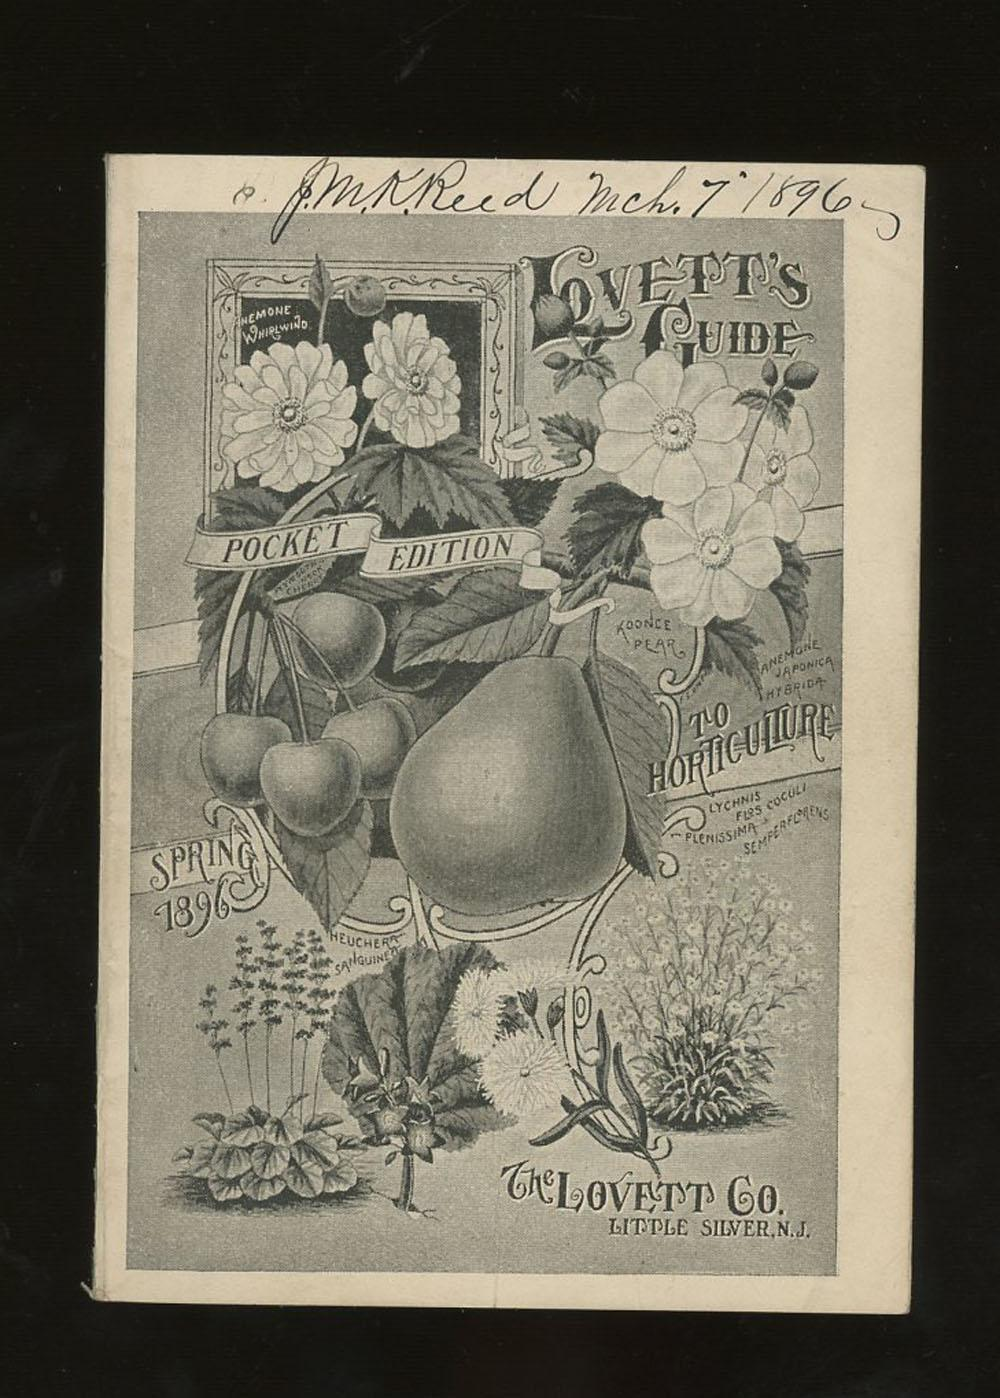 Lovett's Guide To Horticulture, Pocket Edition, Spring 1896 The Lovett Co Very Good Softcover